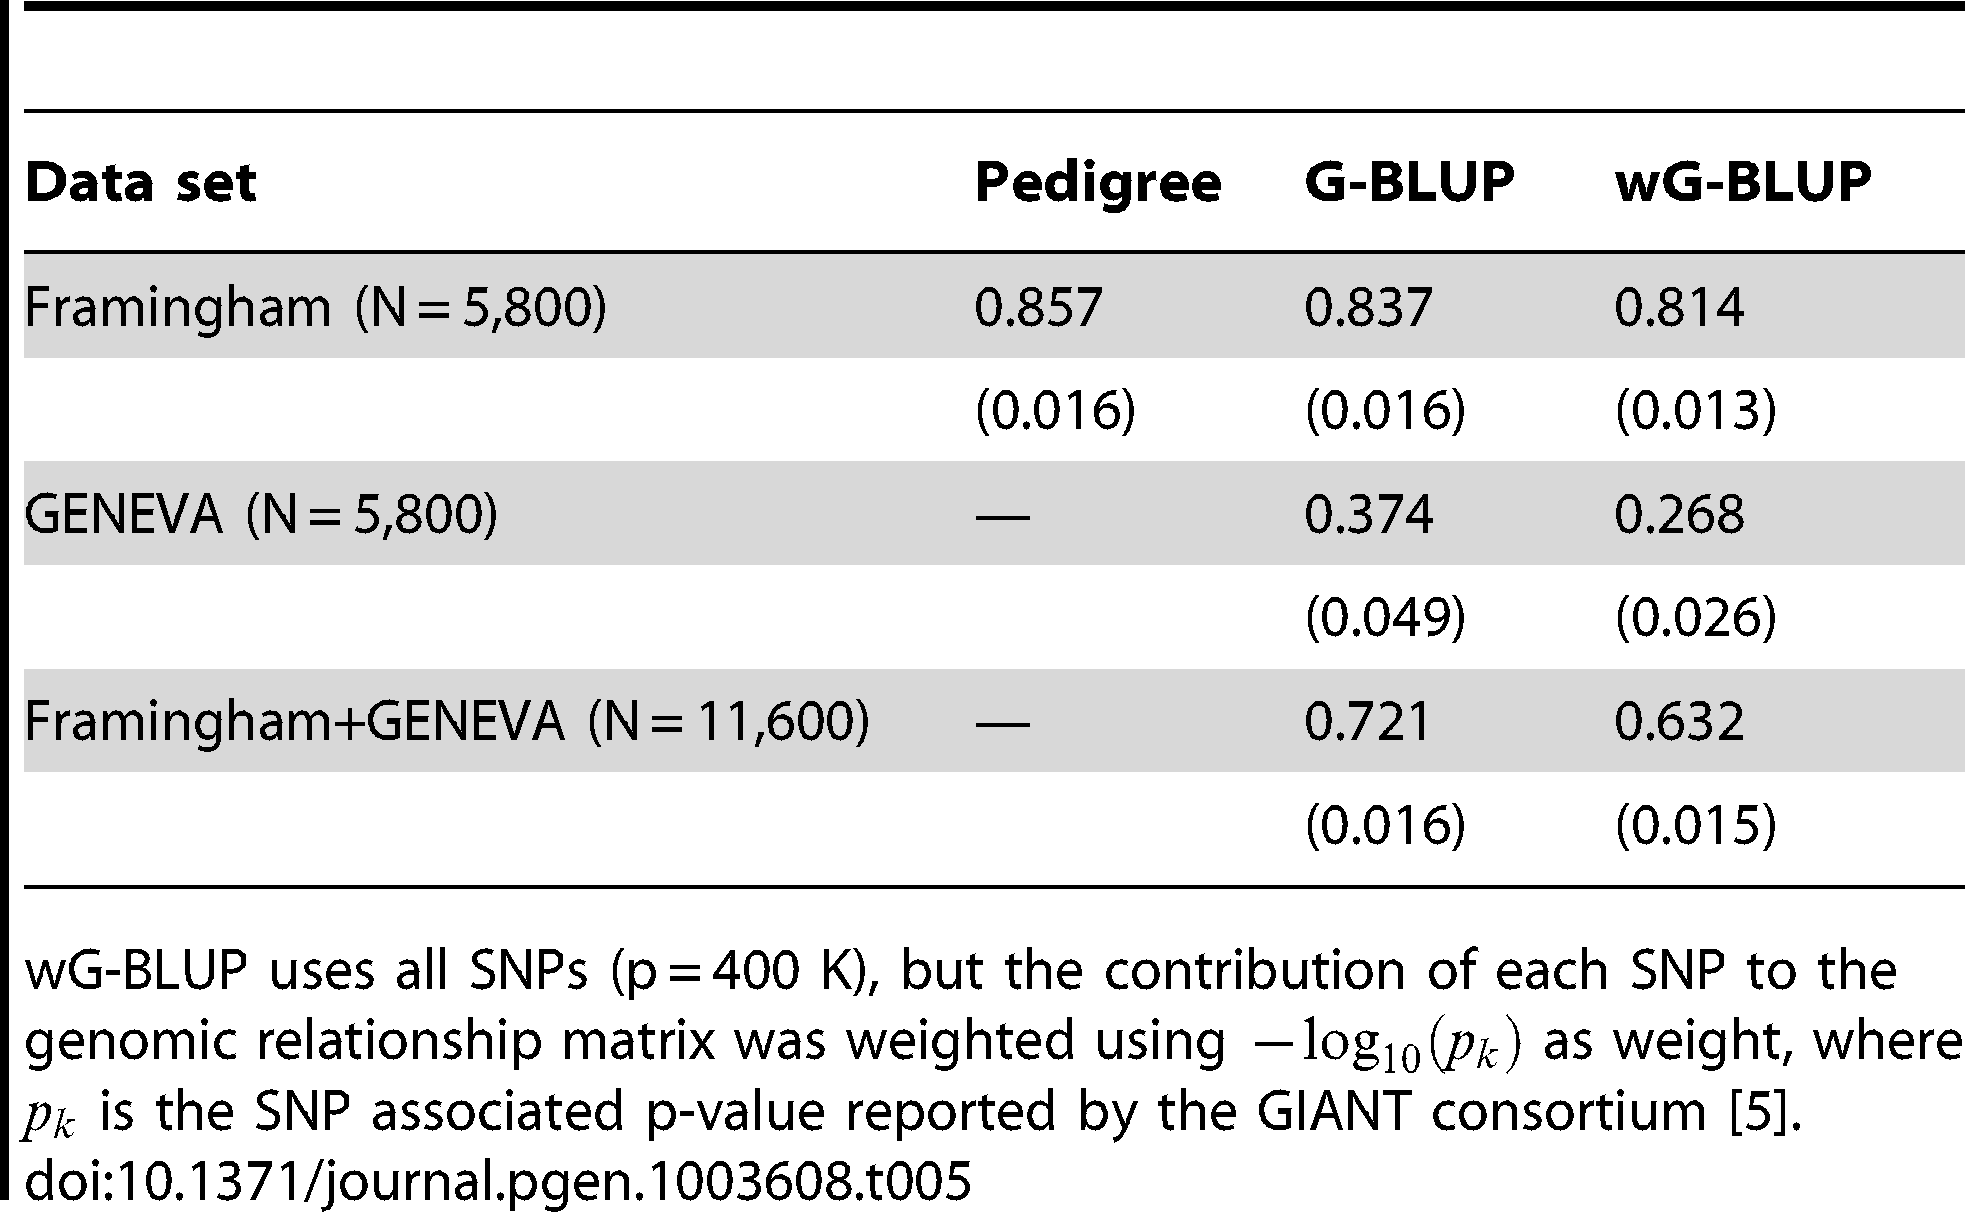 Estimates of proportion of variance accounted for by regression on pedigree or regression on markers by training data set and analysis method (estimated posterior standard deviaton).